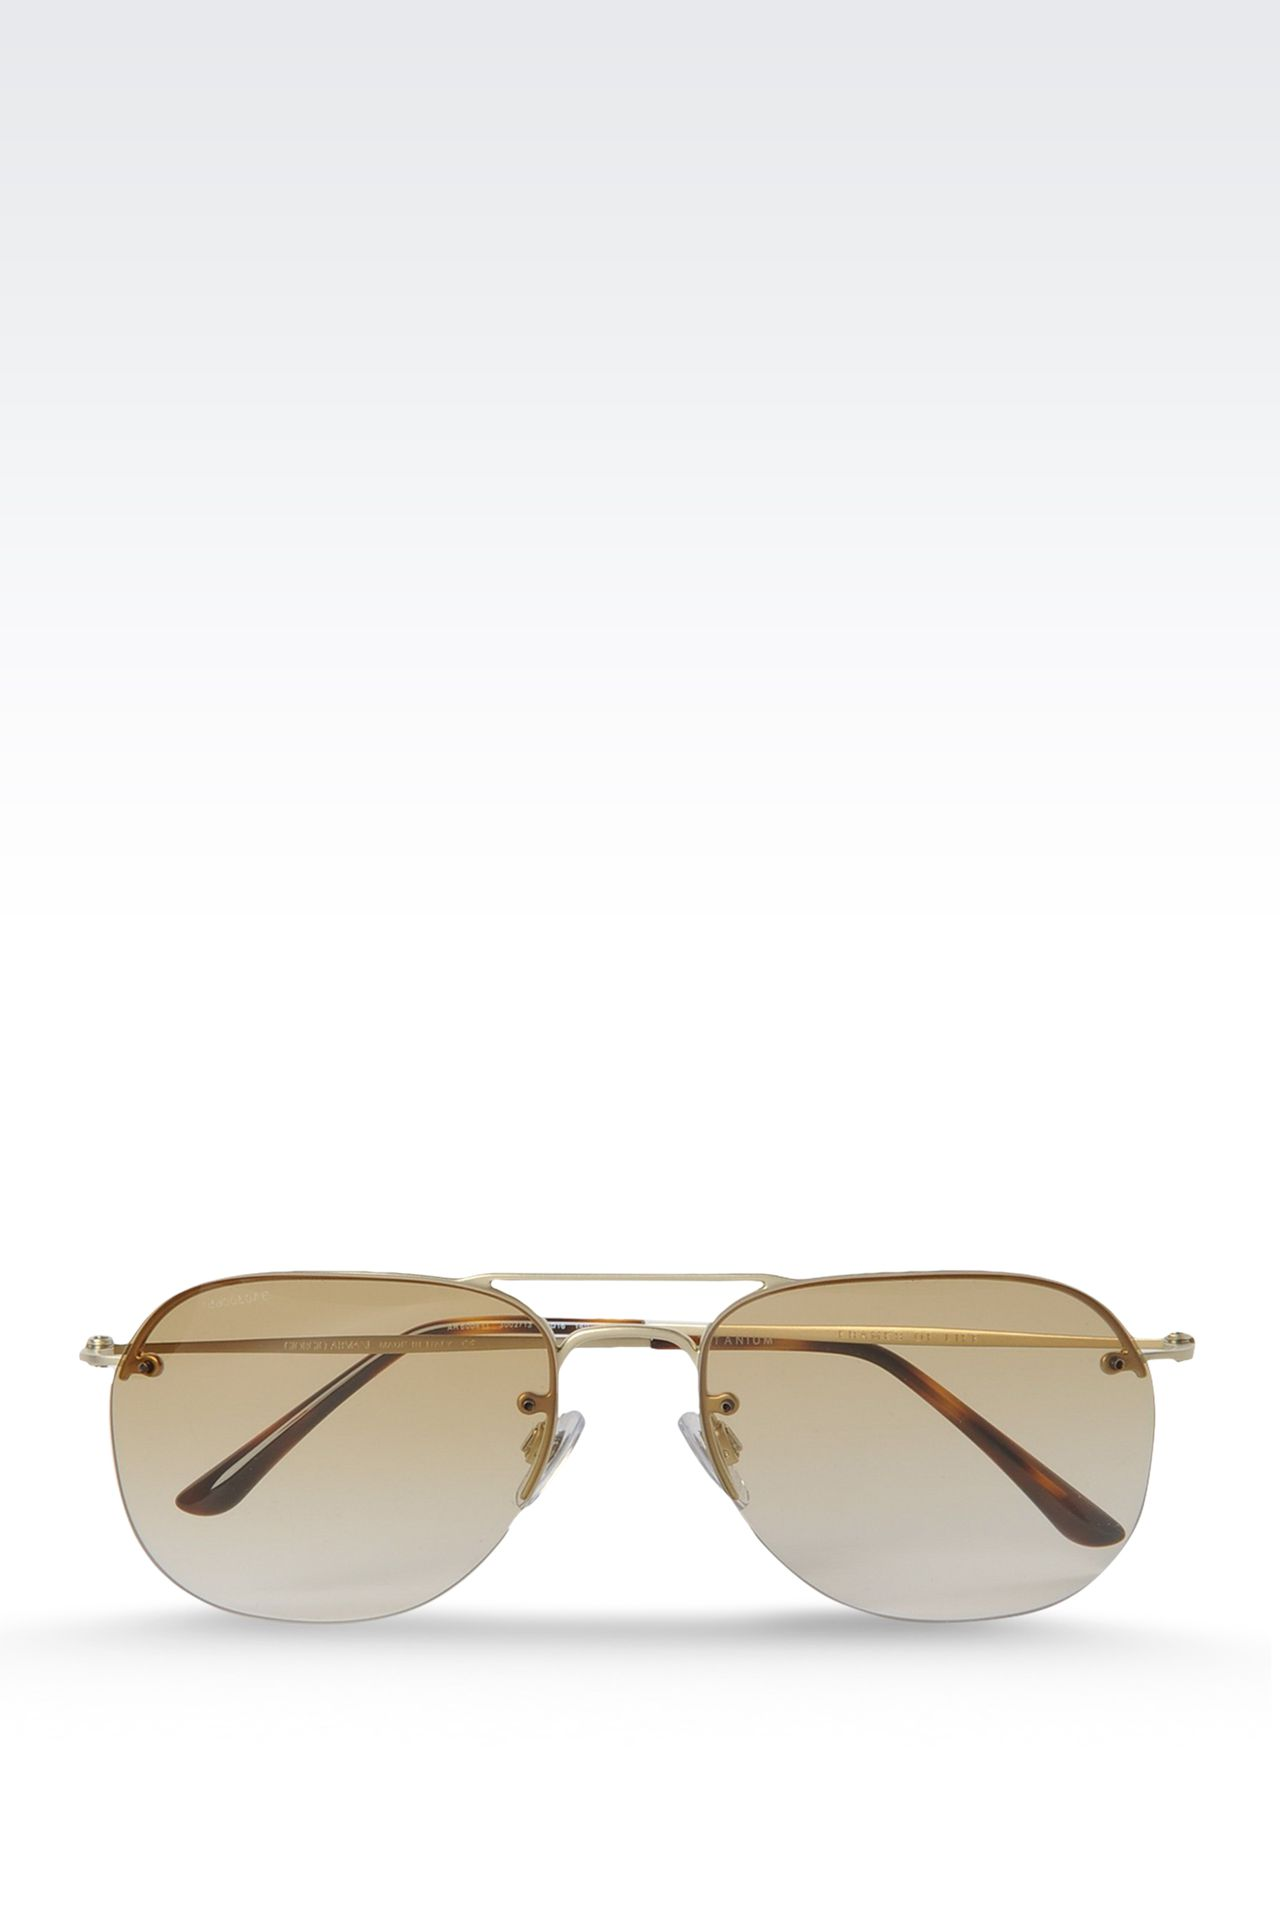 burberry designer glasses  the designer